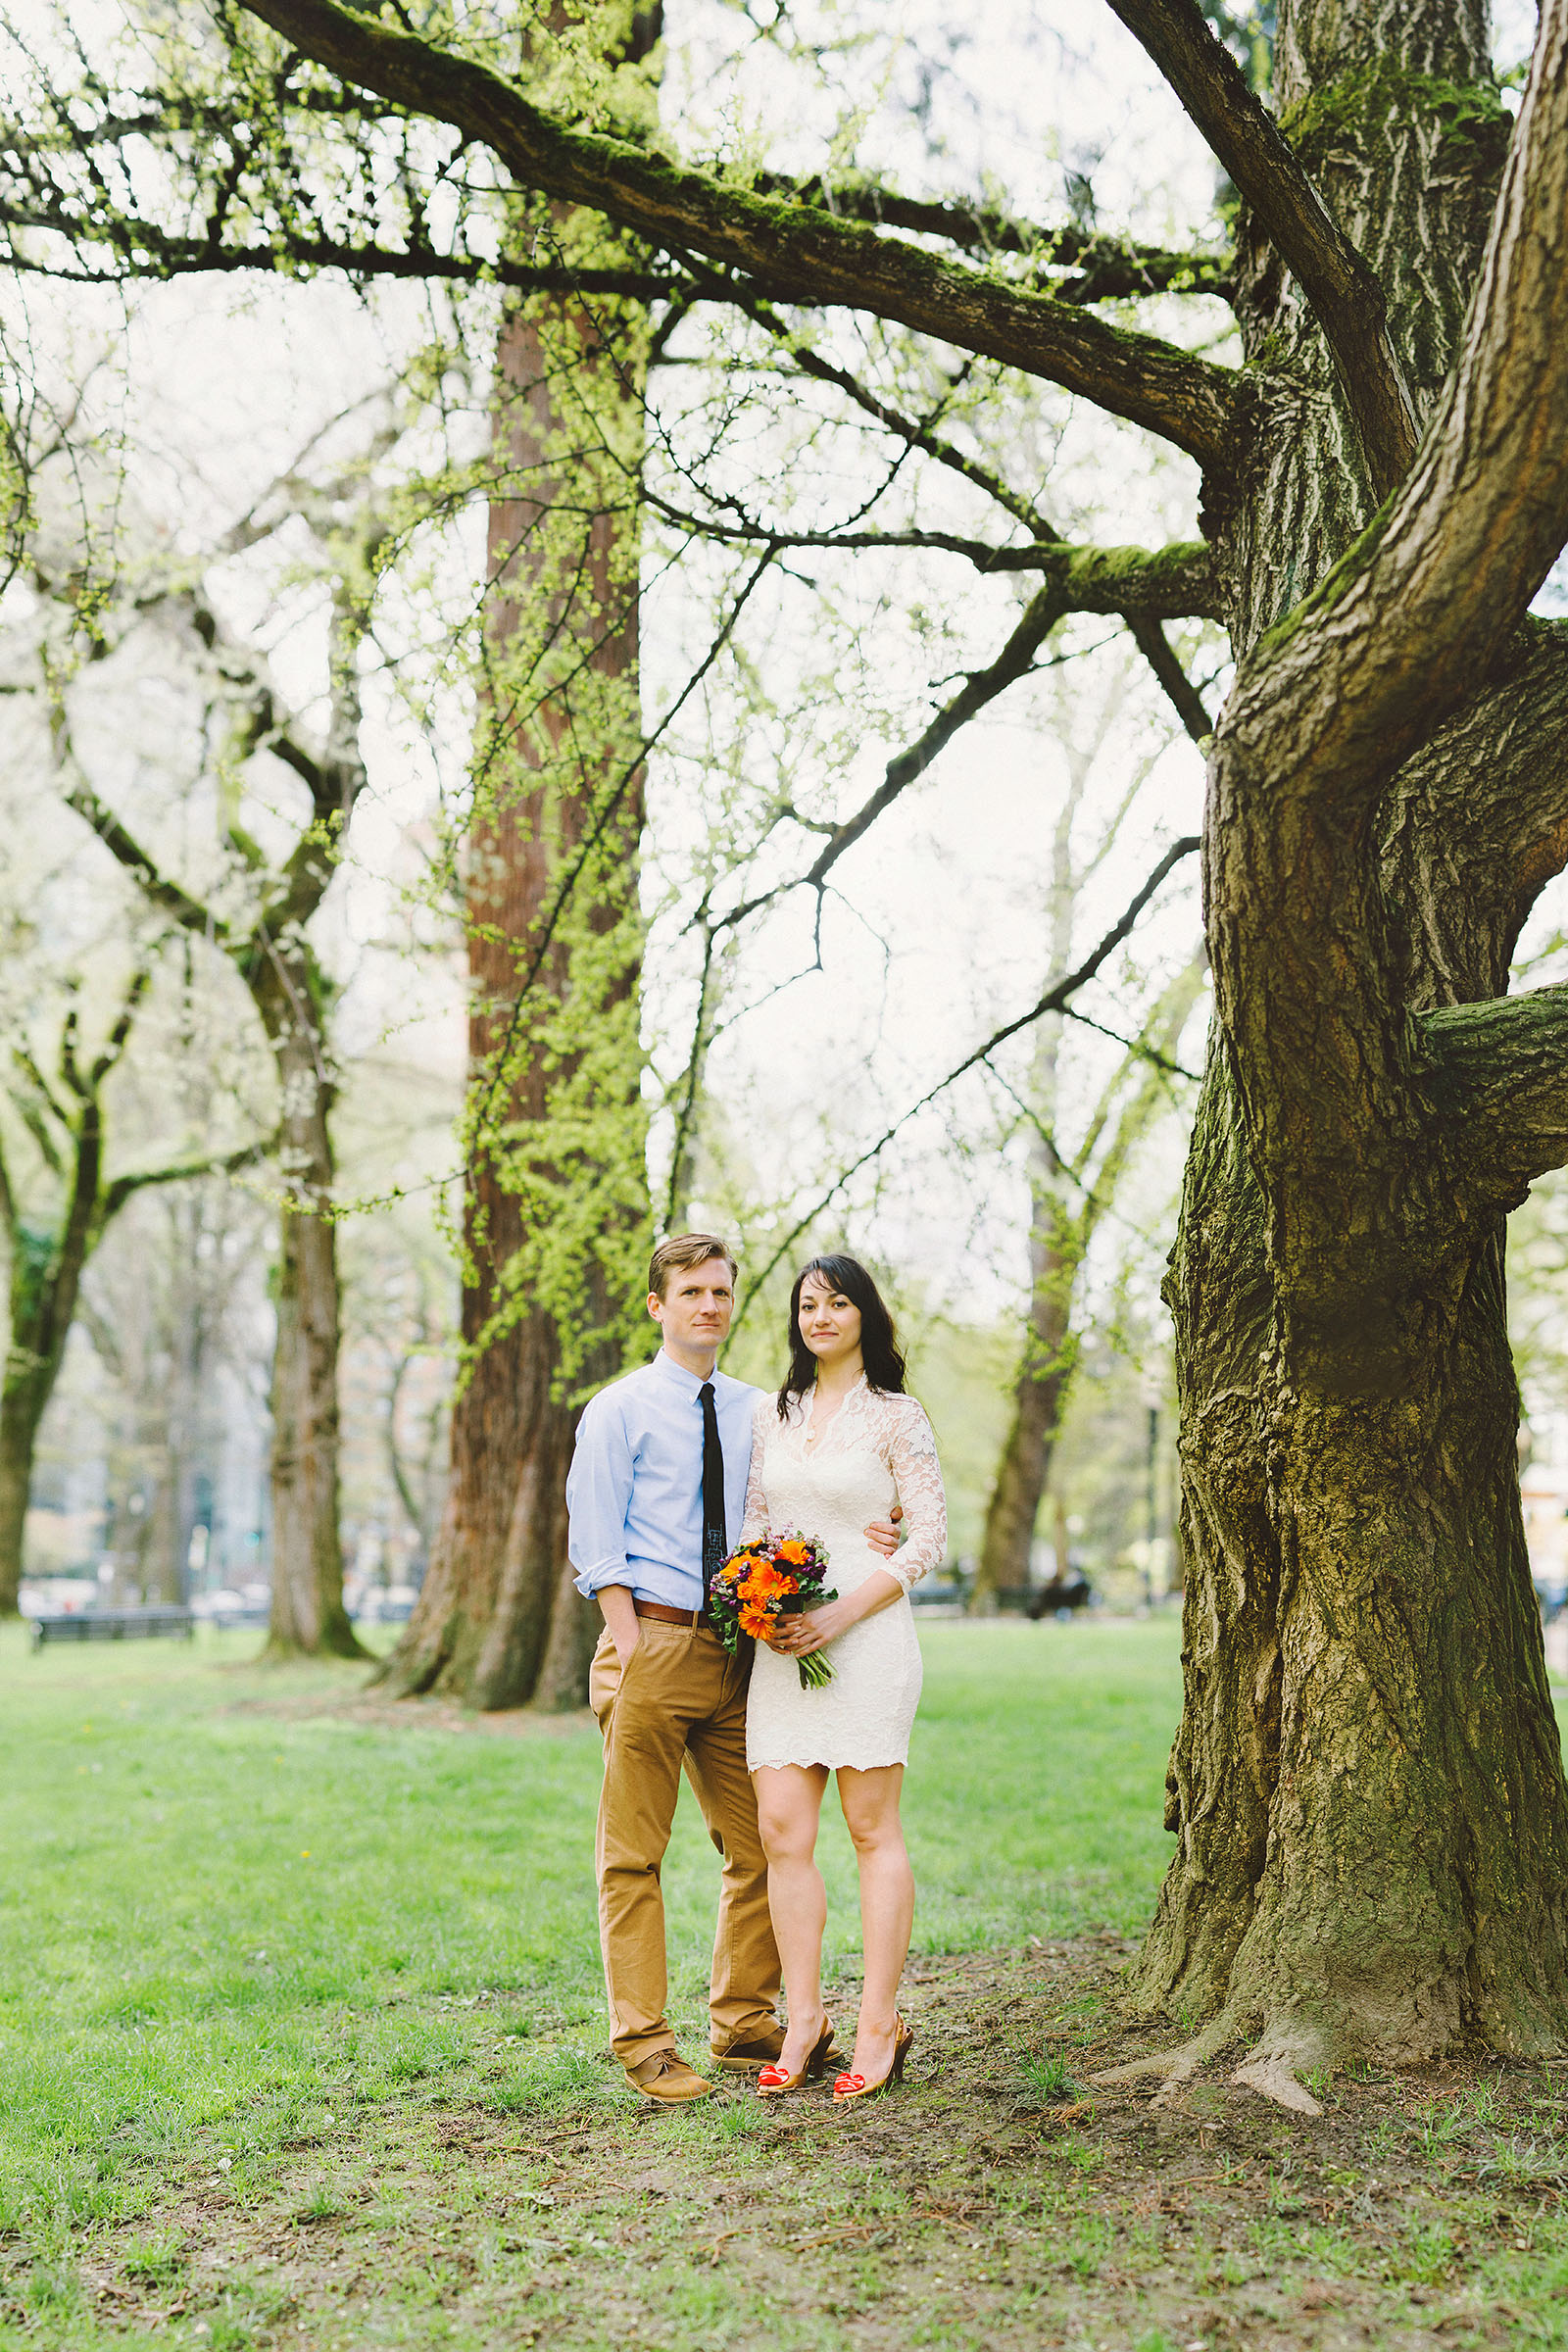 Bride and Groom outside Multnomah County Courthouse | Portland Courthouse Wedding